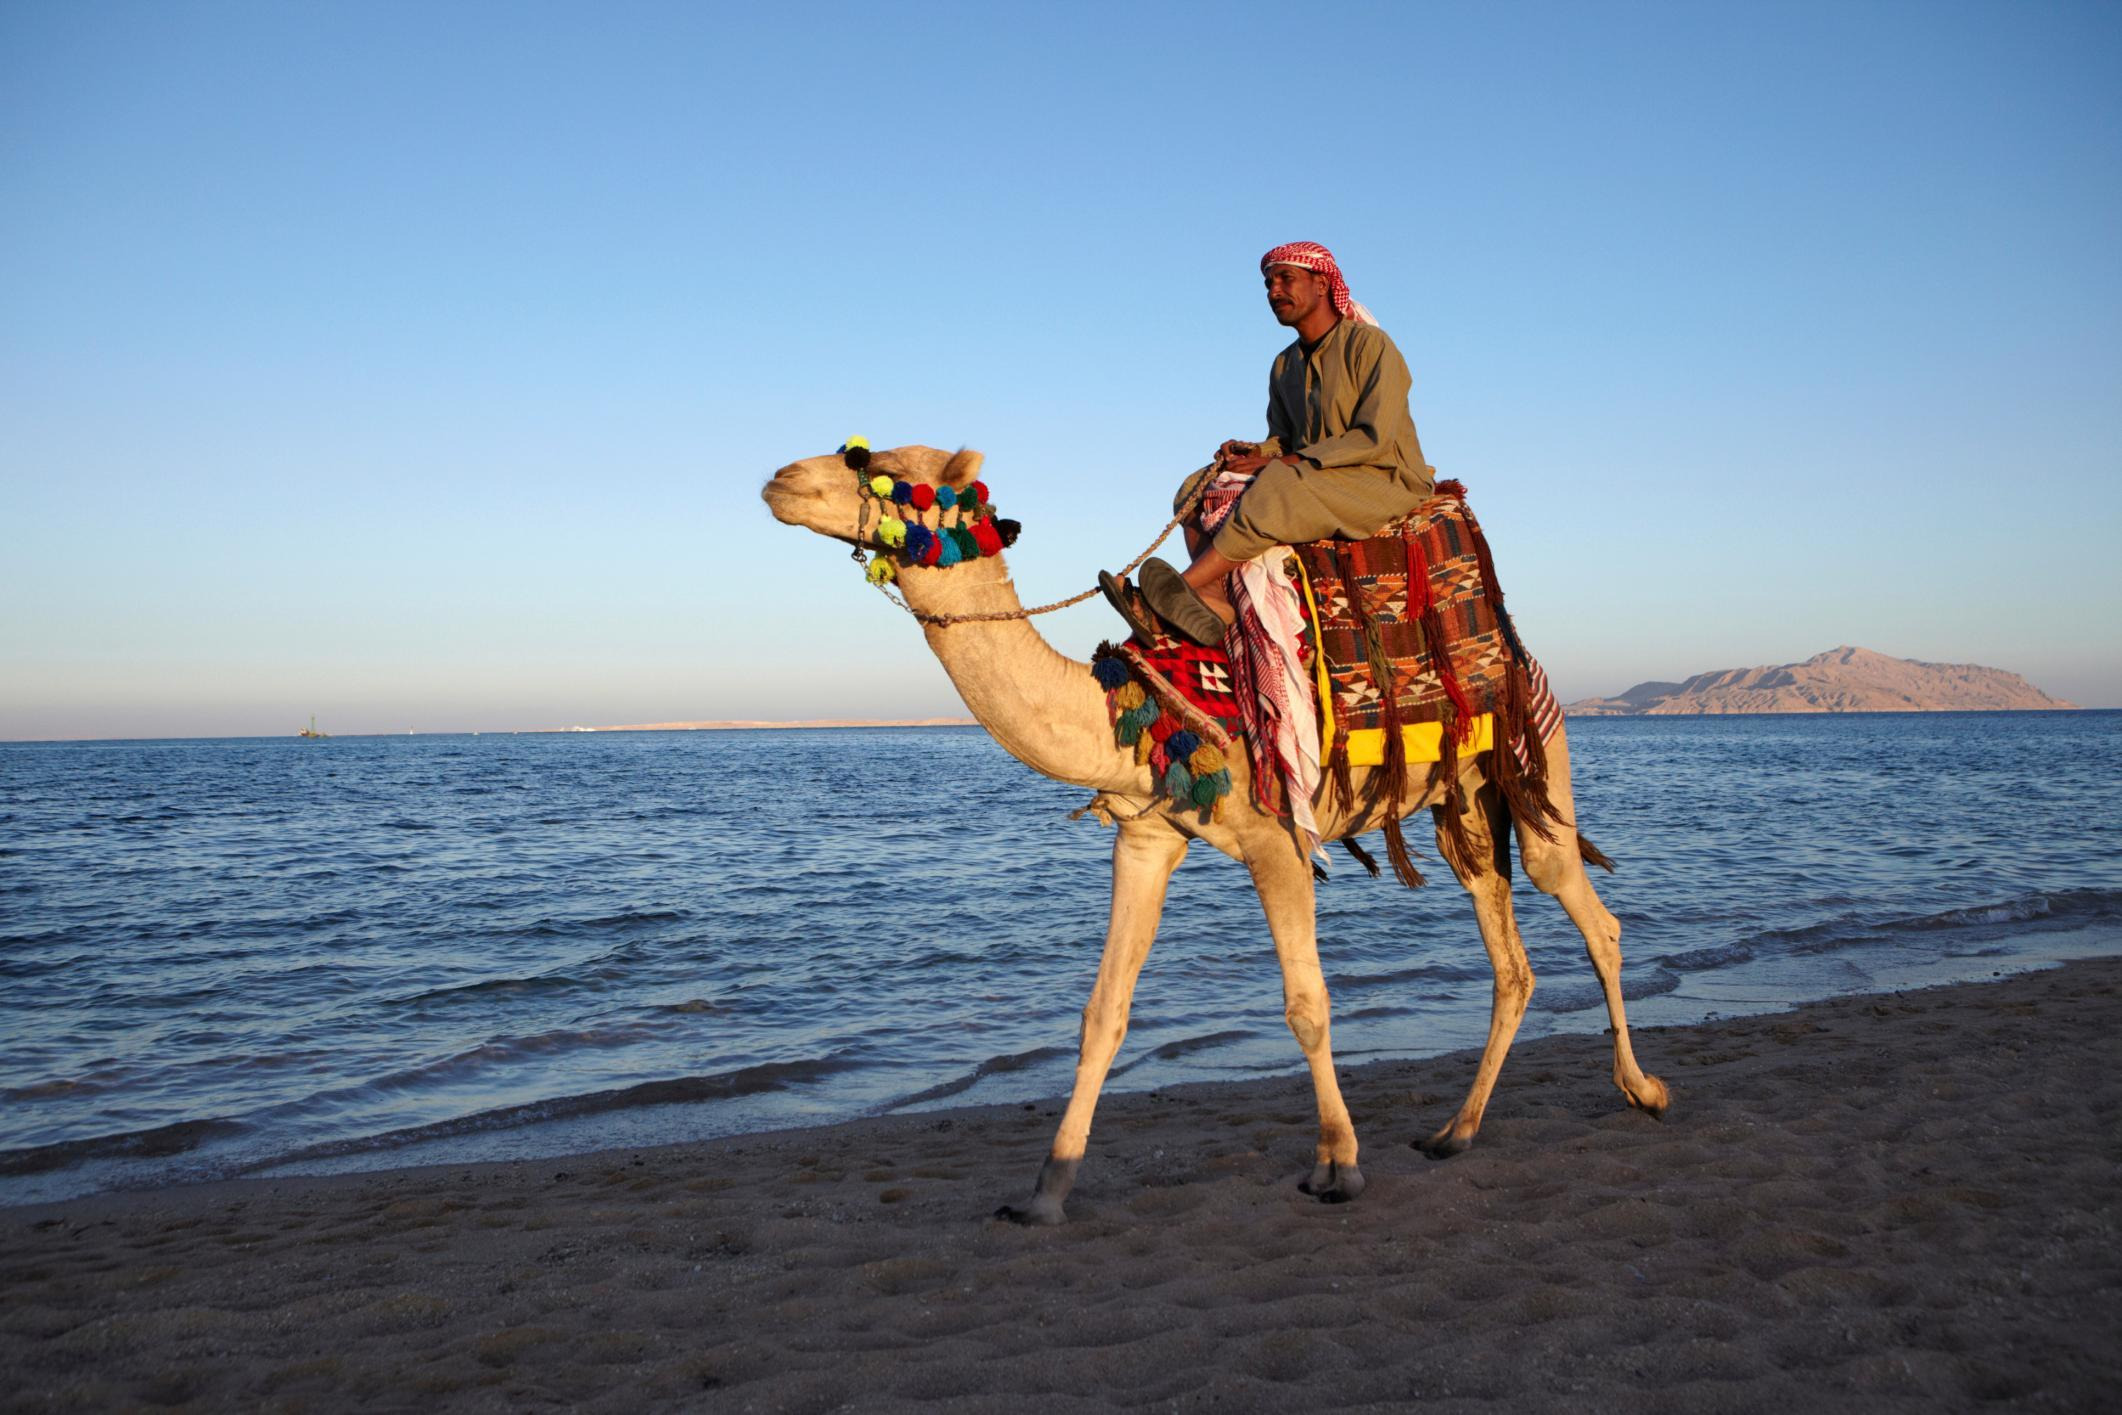 How to Spend 2 Days in Sharm El Sheikh